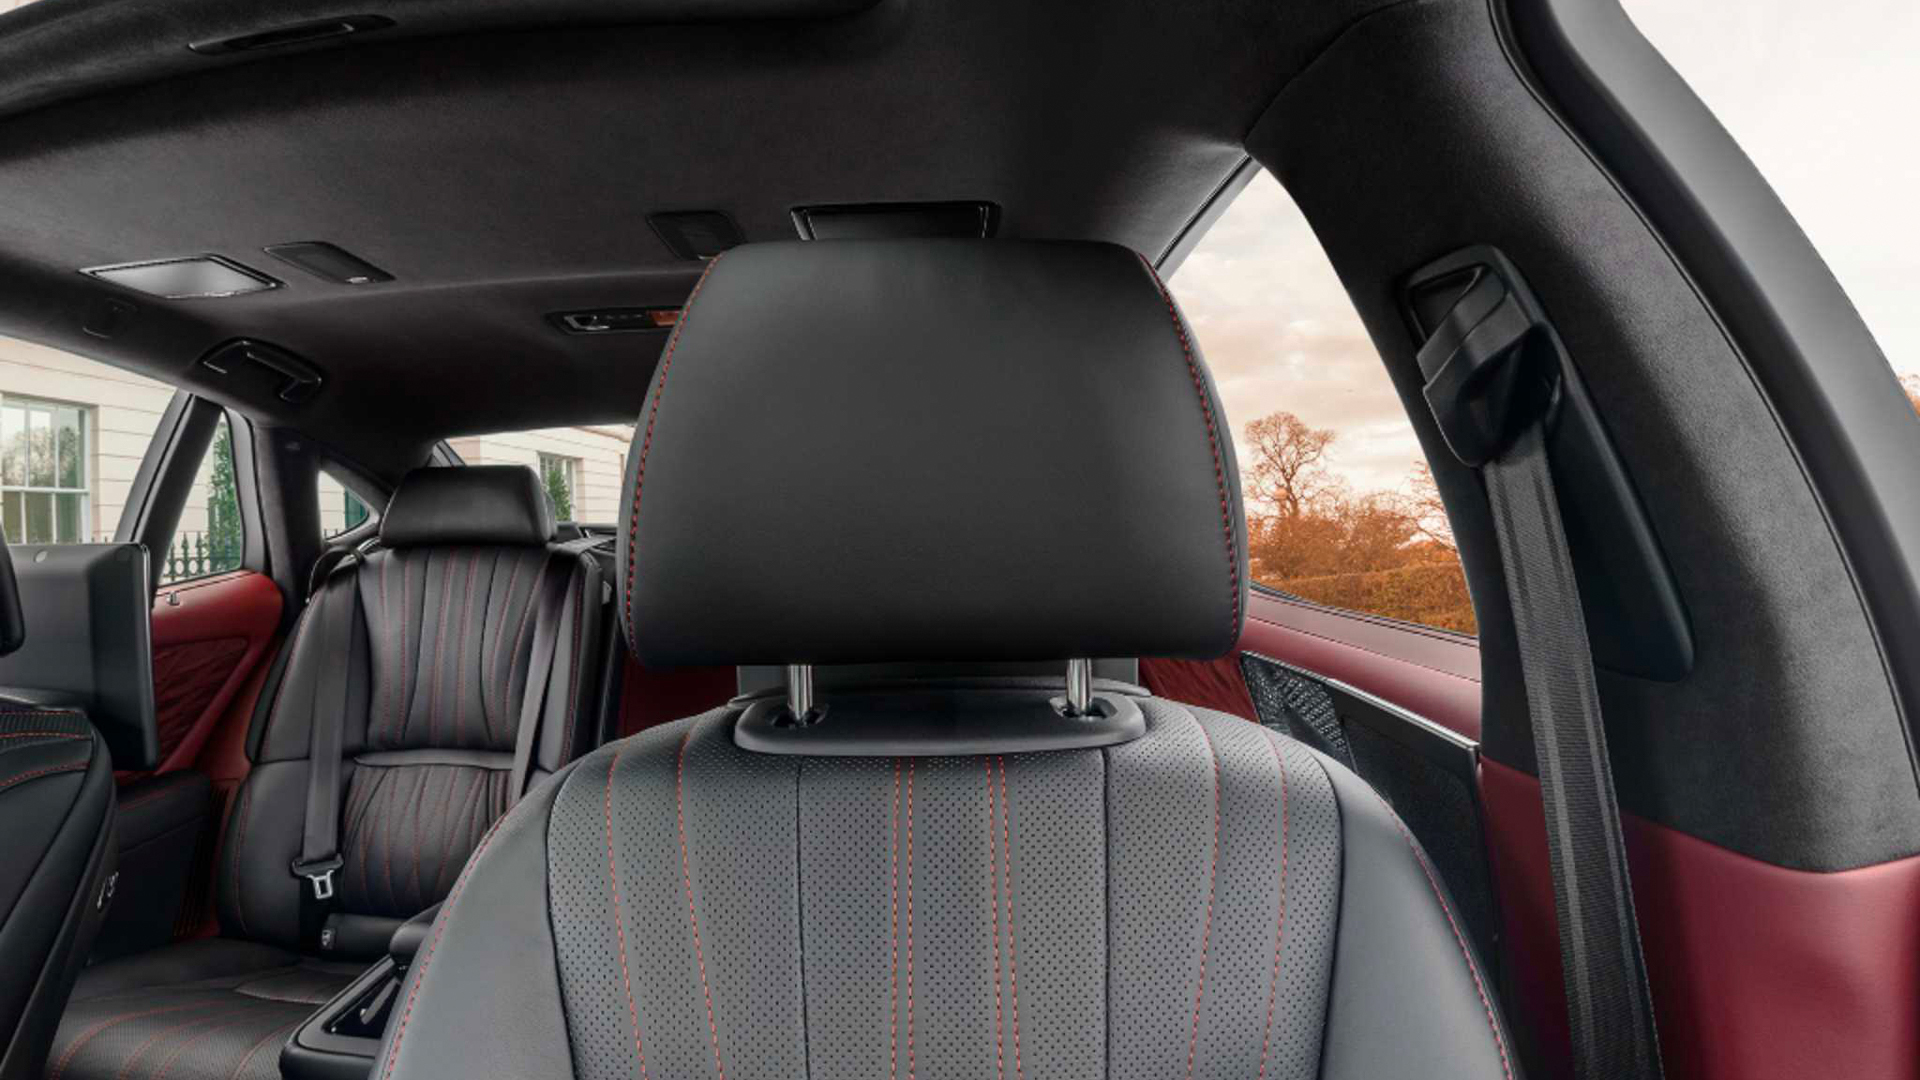 Lexus LS driver's seat. Virtual background to use on Zoom, Microsoft Teams, Skype, Google Meet, WebEx or any other compatible app.